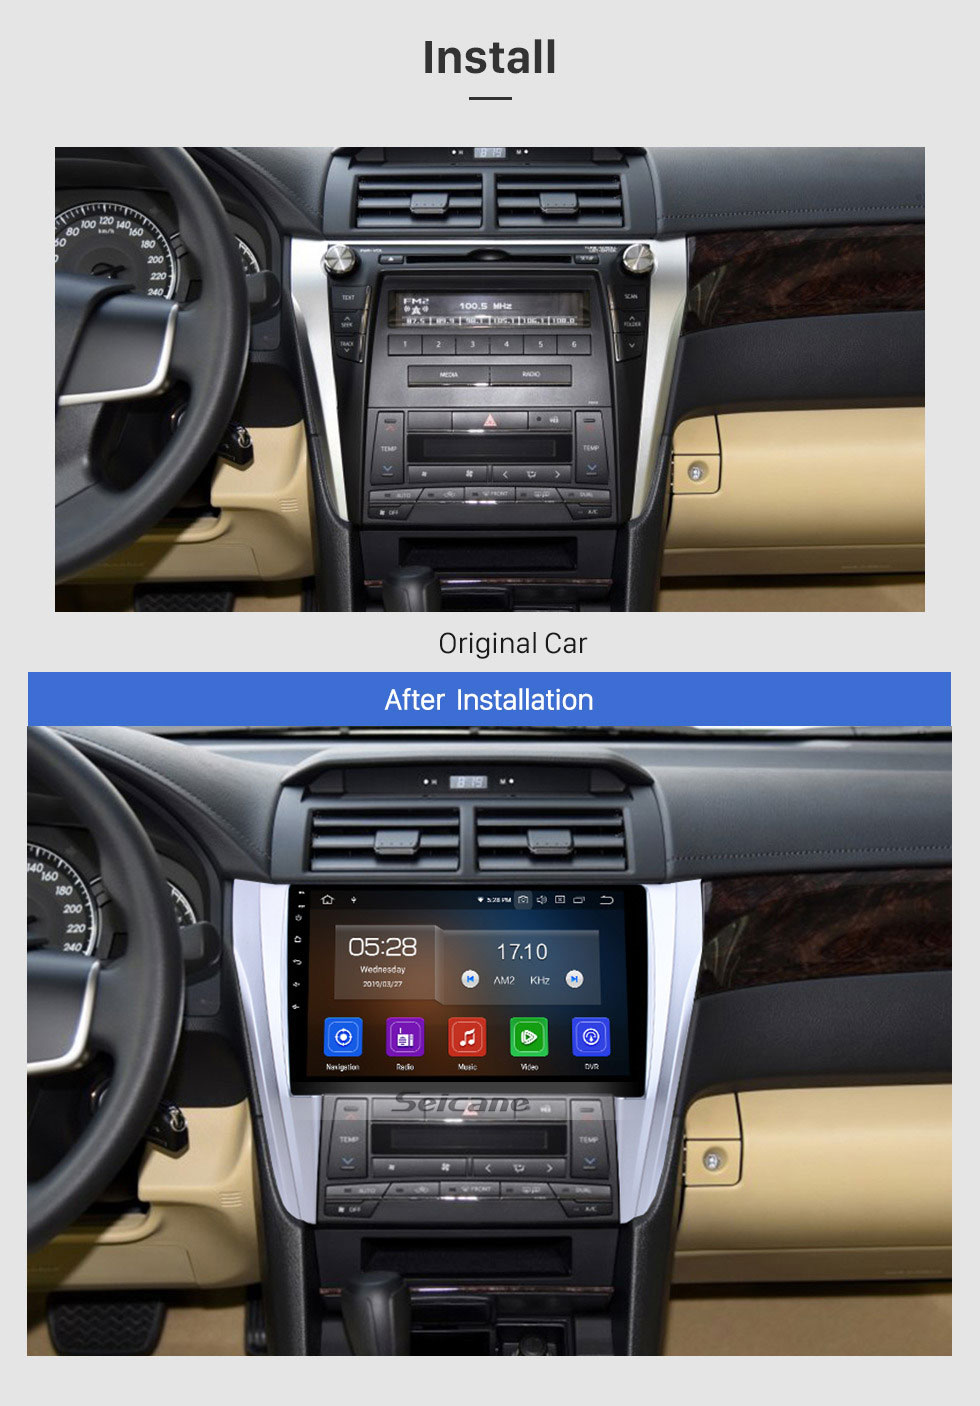 Seicane 10.1 Inch Android 9.0 Bluetooth Radio For 2015 2016 2017 Toyota CAMRY 3G WiFi GPS Navigation system TPMS DVR OBD II Rear camera AUX Headrest Monitor Control USB SD Video 3G WiFi Capacitive Touch Screen